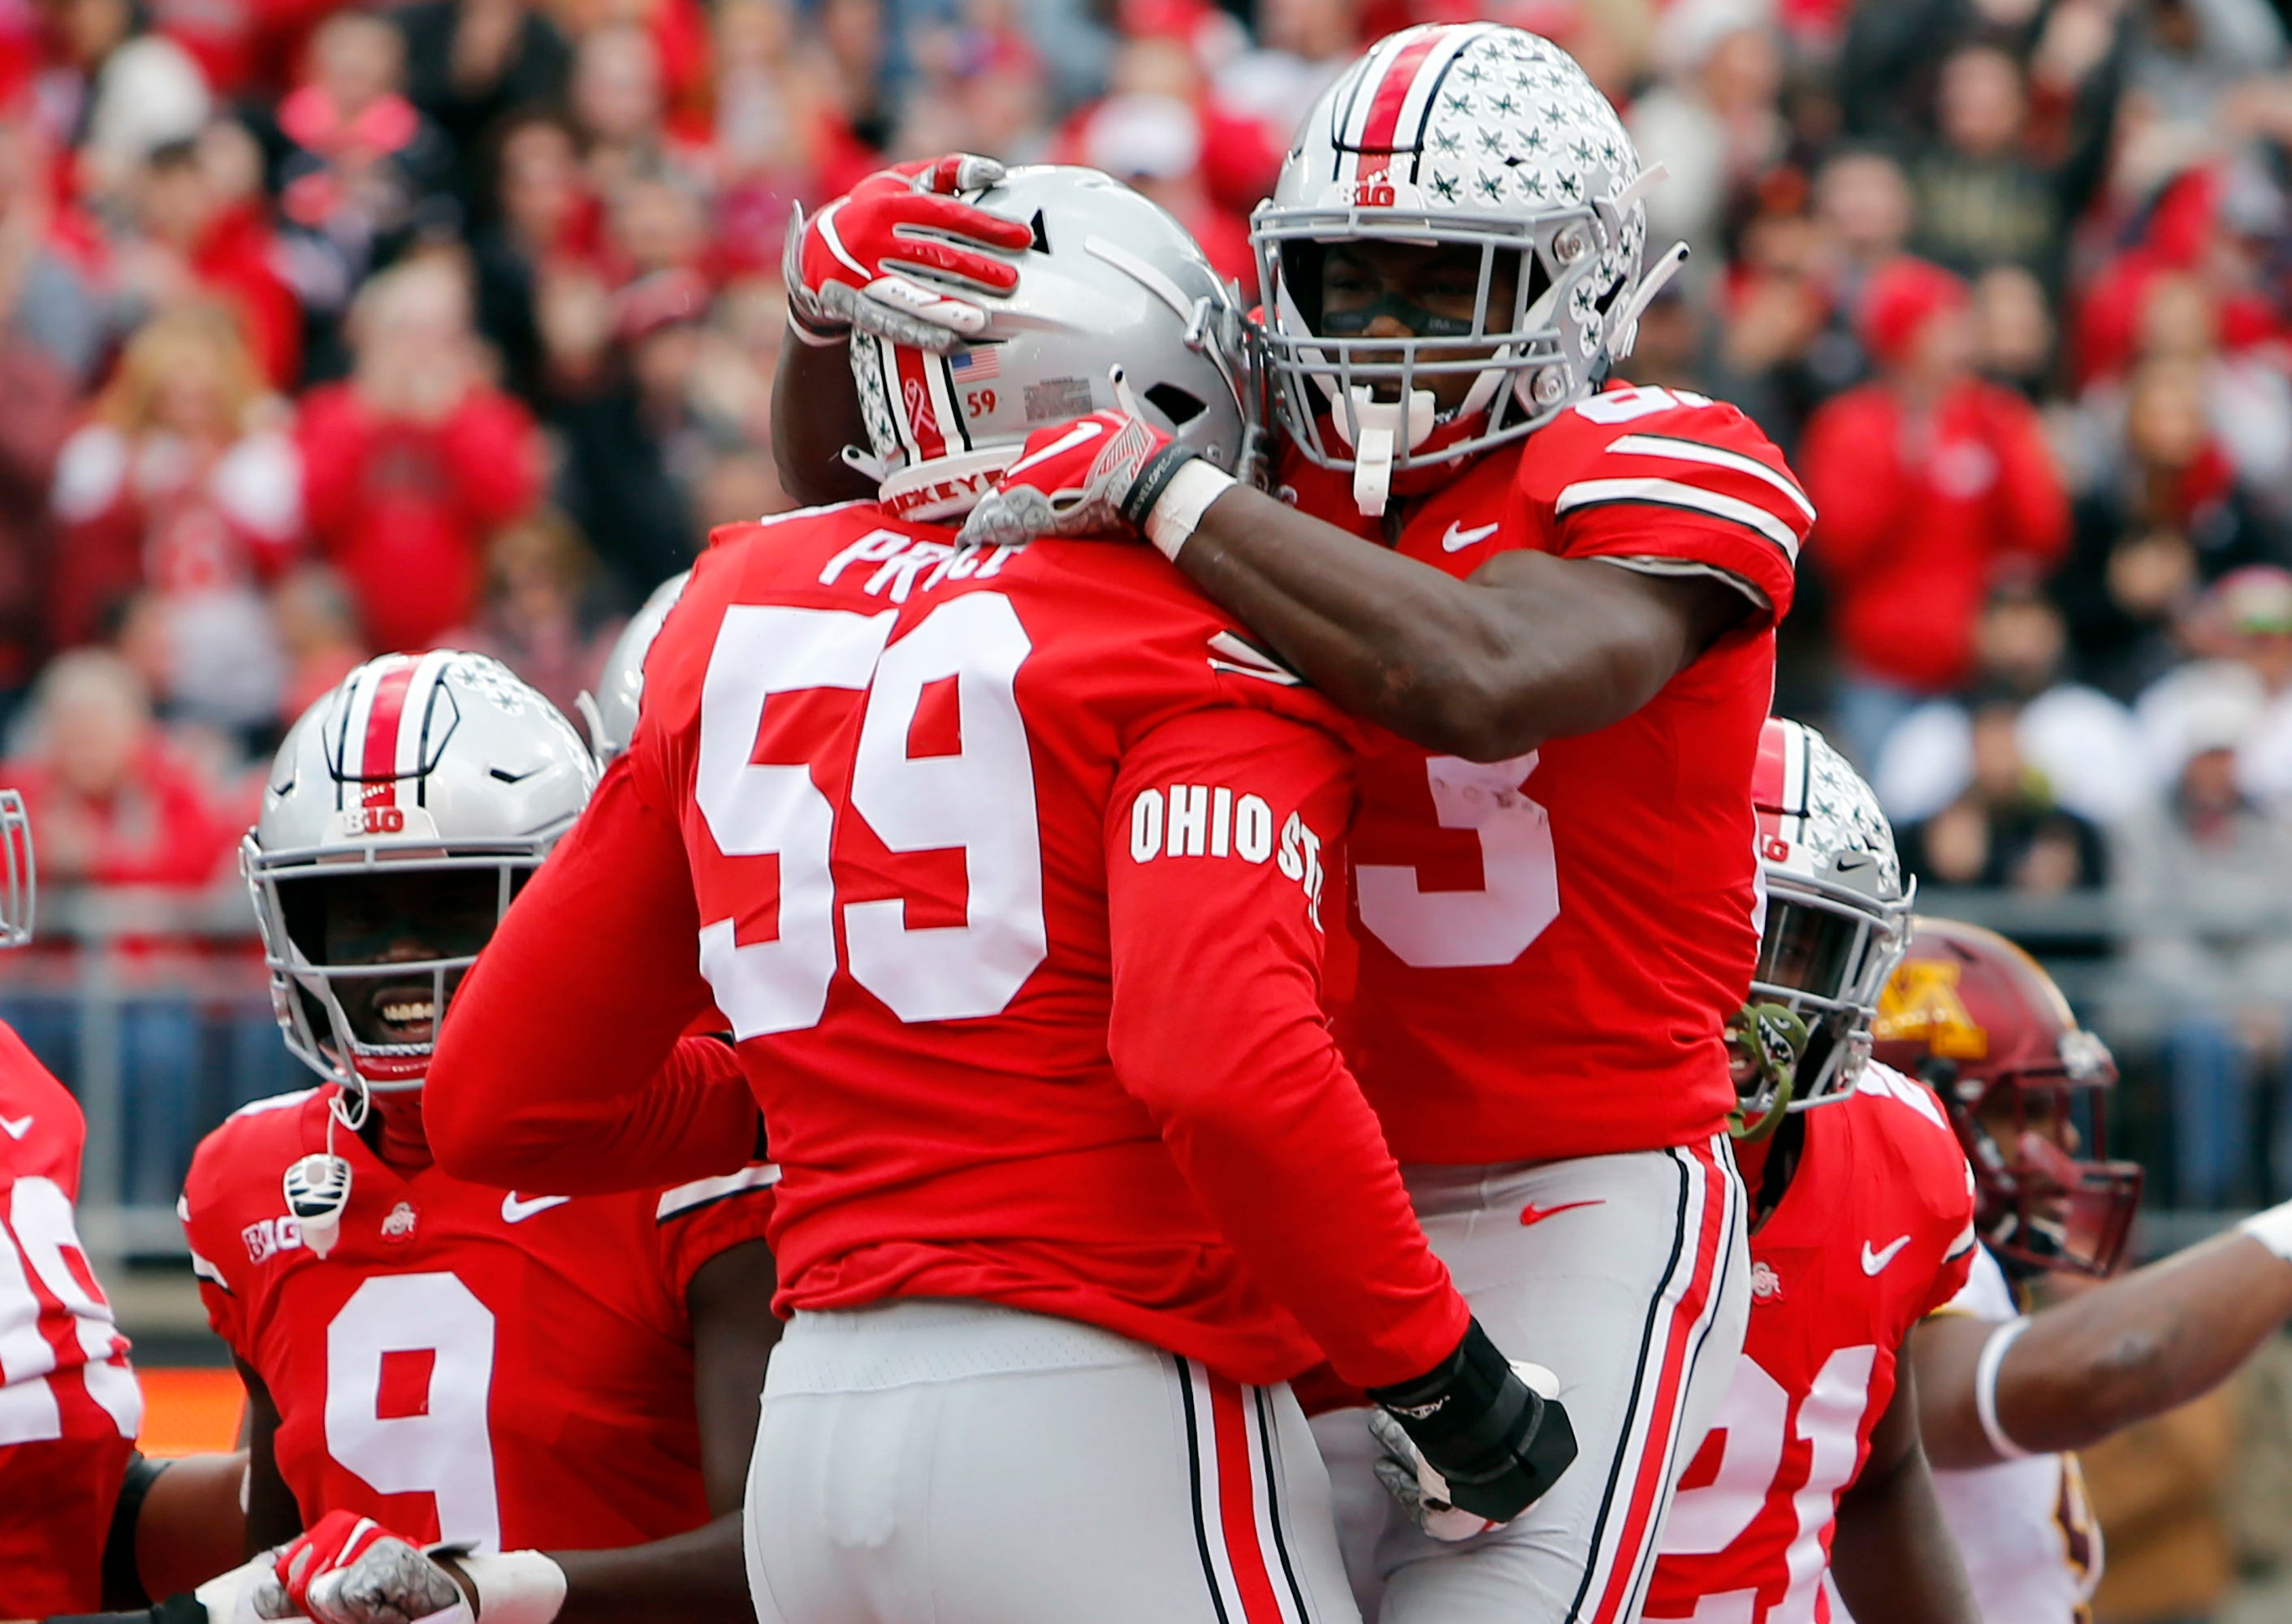 NCAA 1-130 Re-Rank: Clear-cut top four emerges after college football weekend of upsets